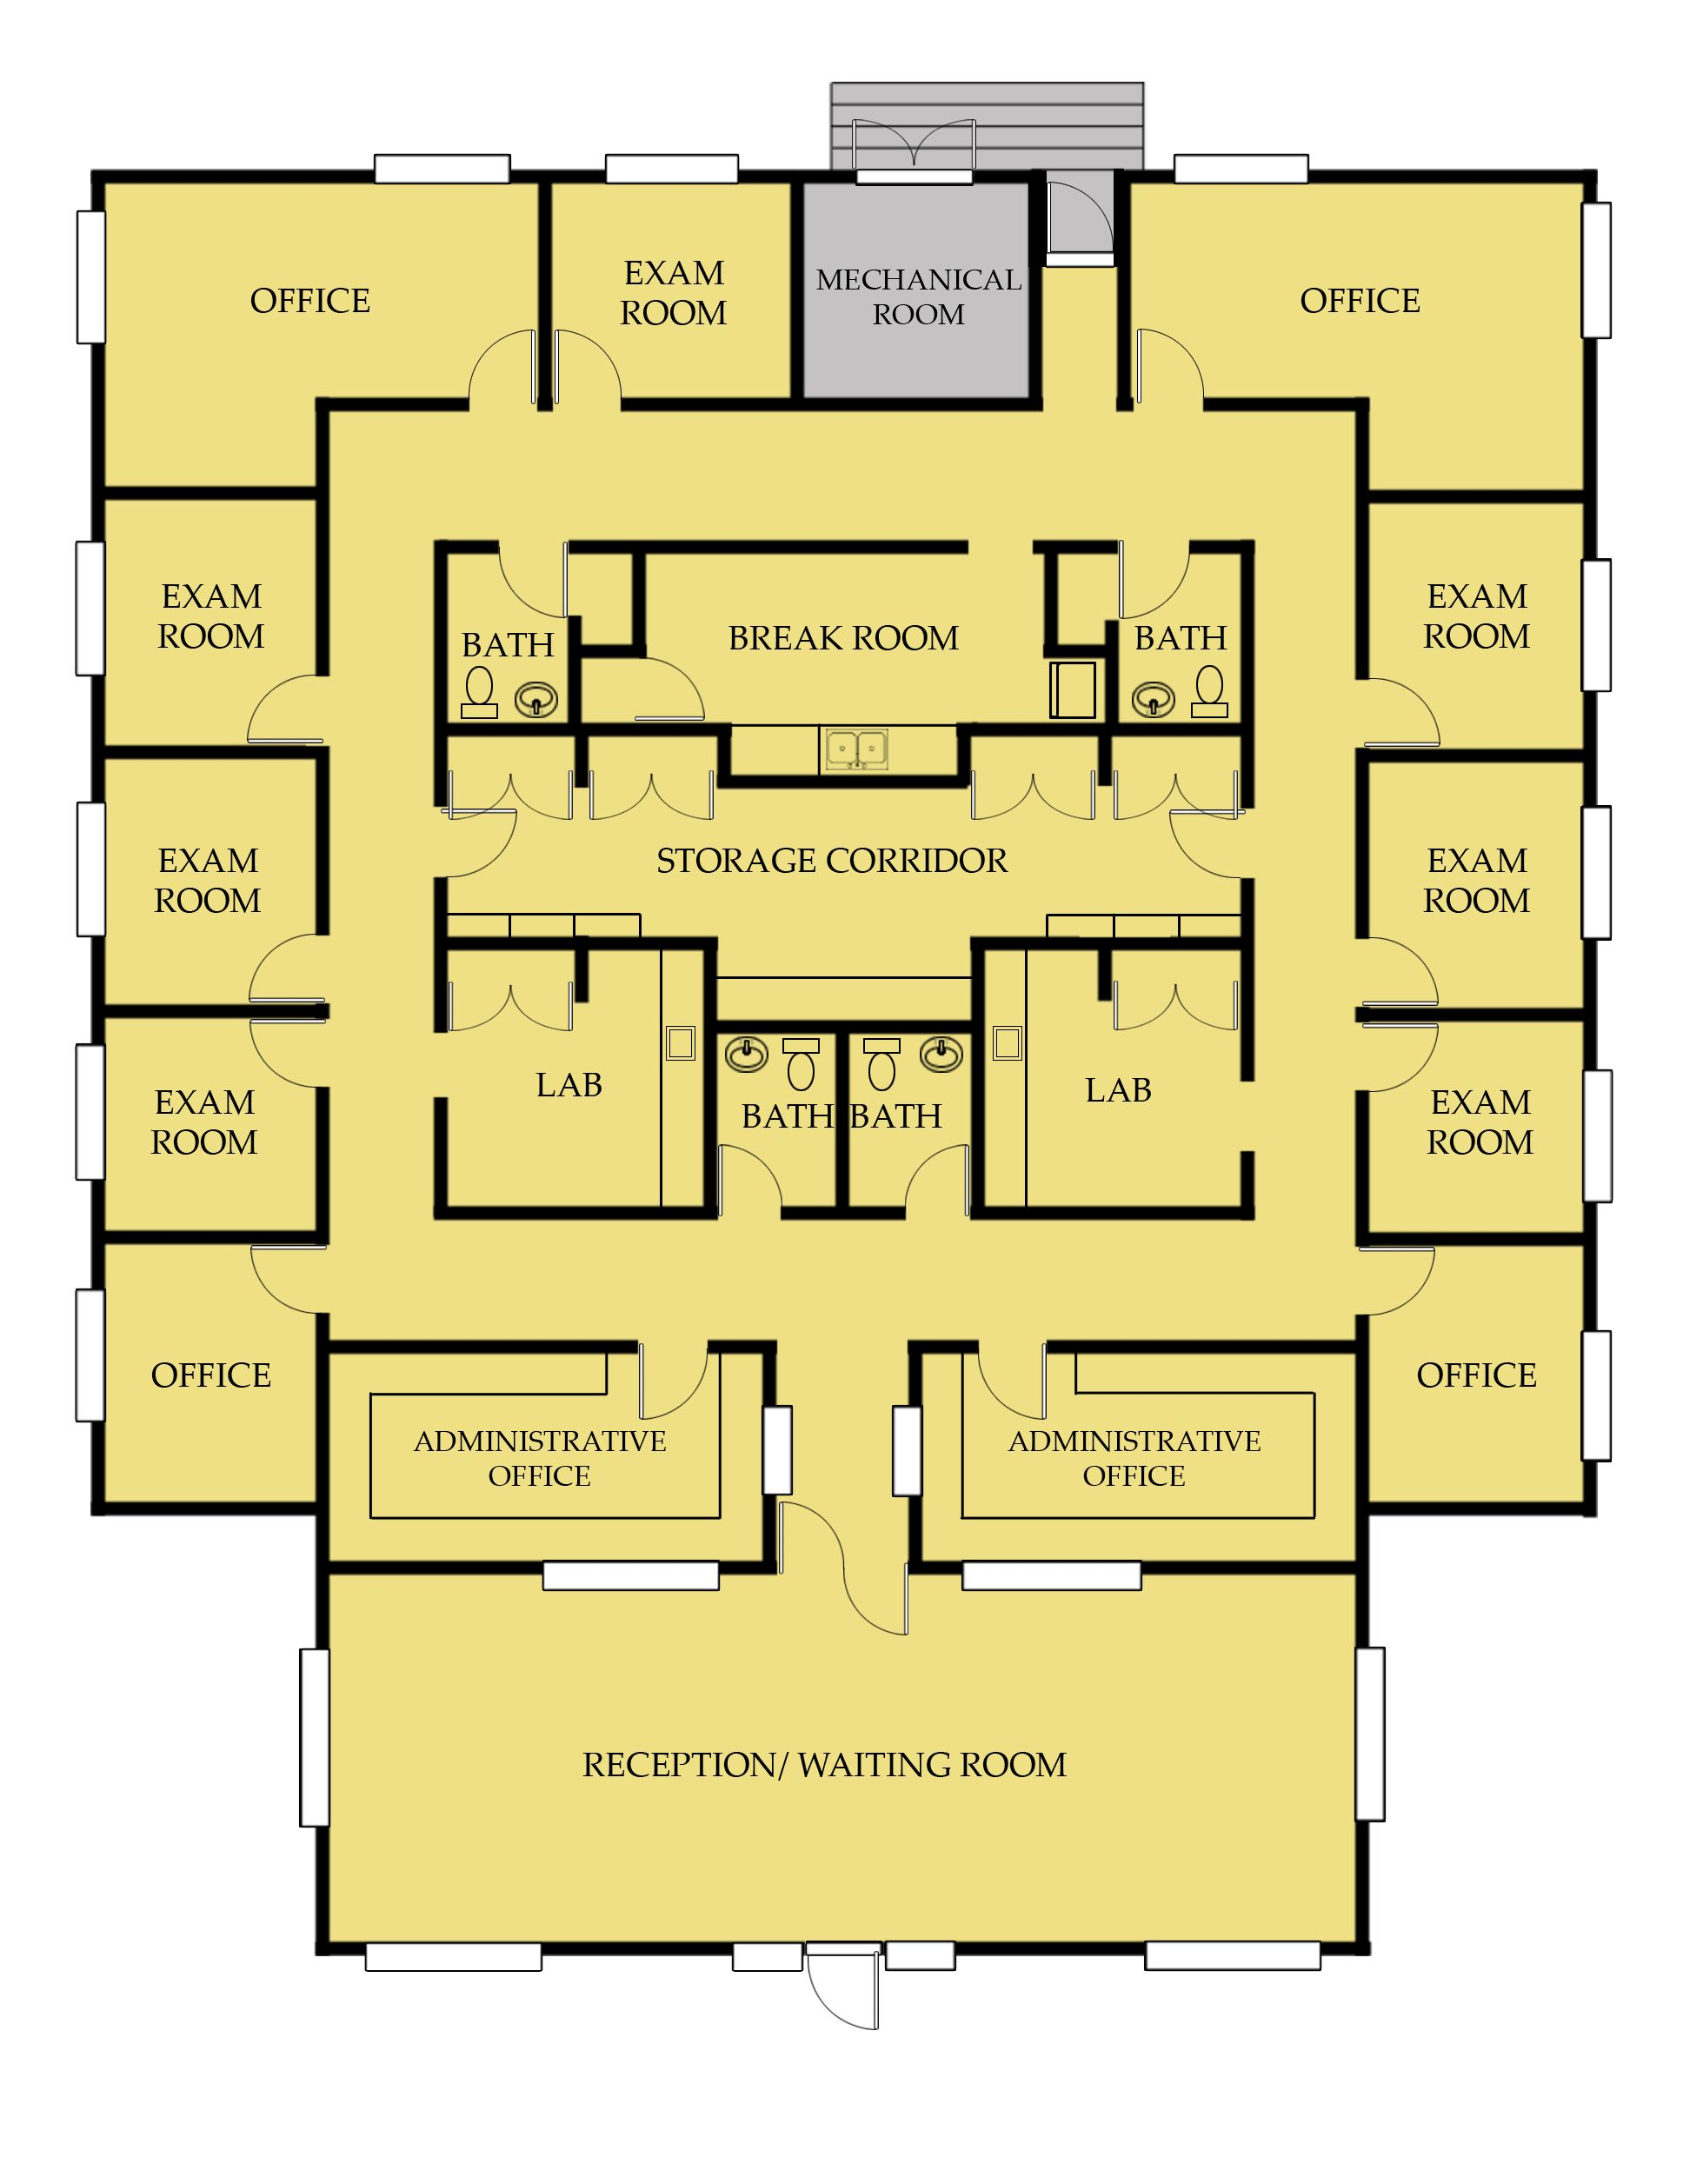 medical office floor plan pinteres